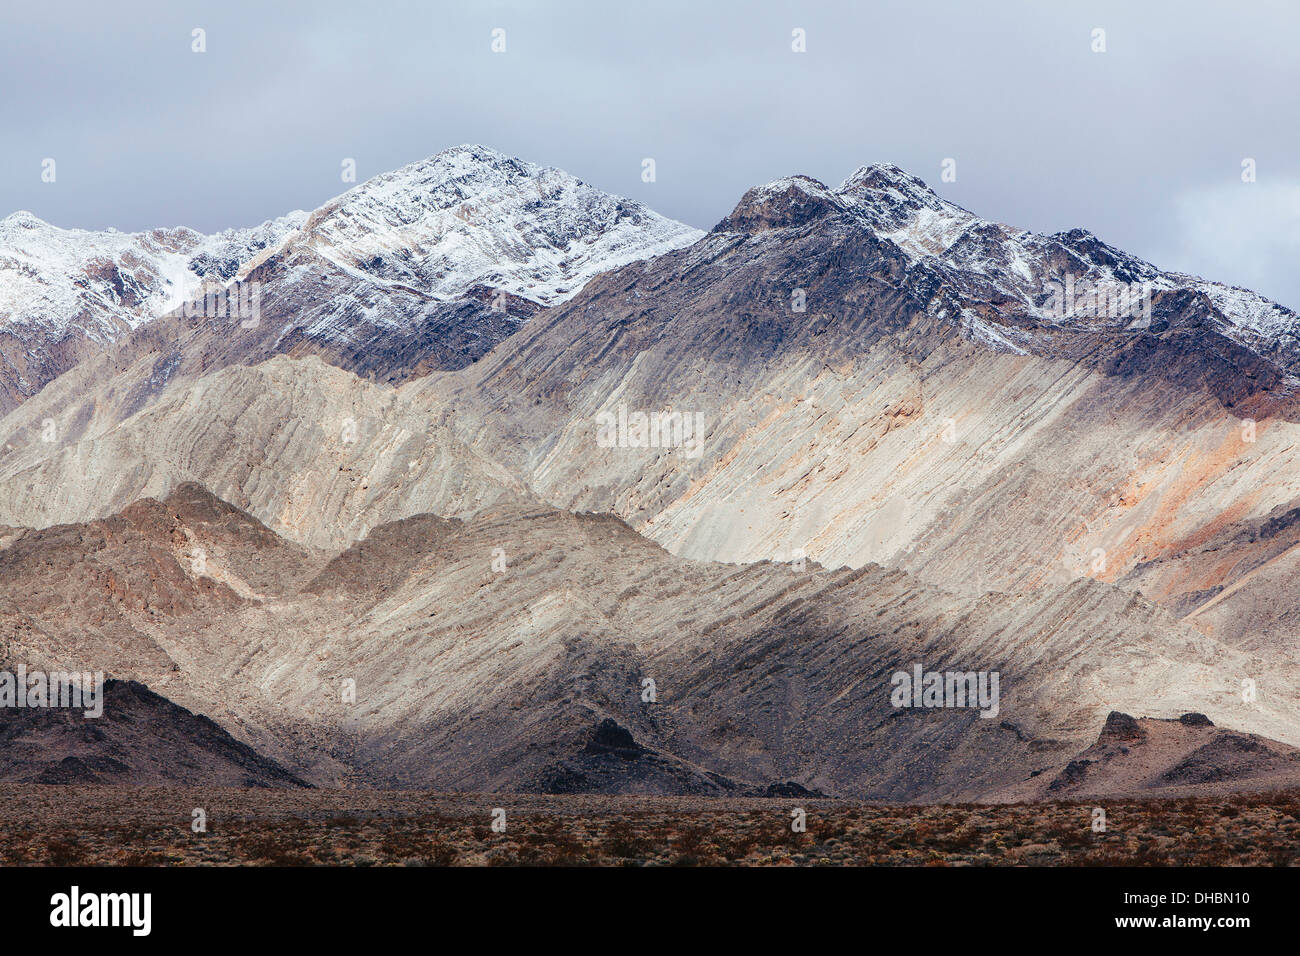 Snow covered mountains and ominous sky, Panamint Mountains, Death Valley NP - Stock Image